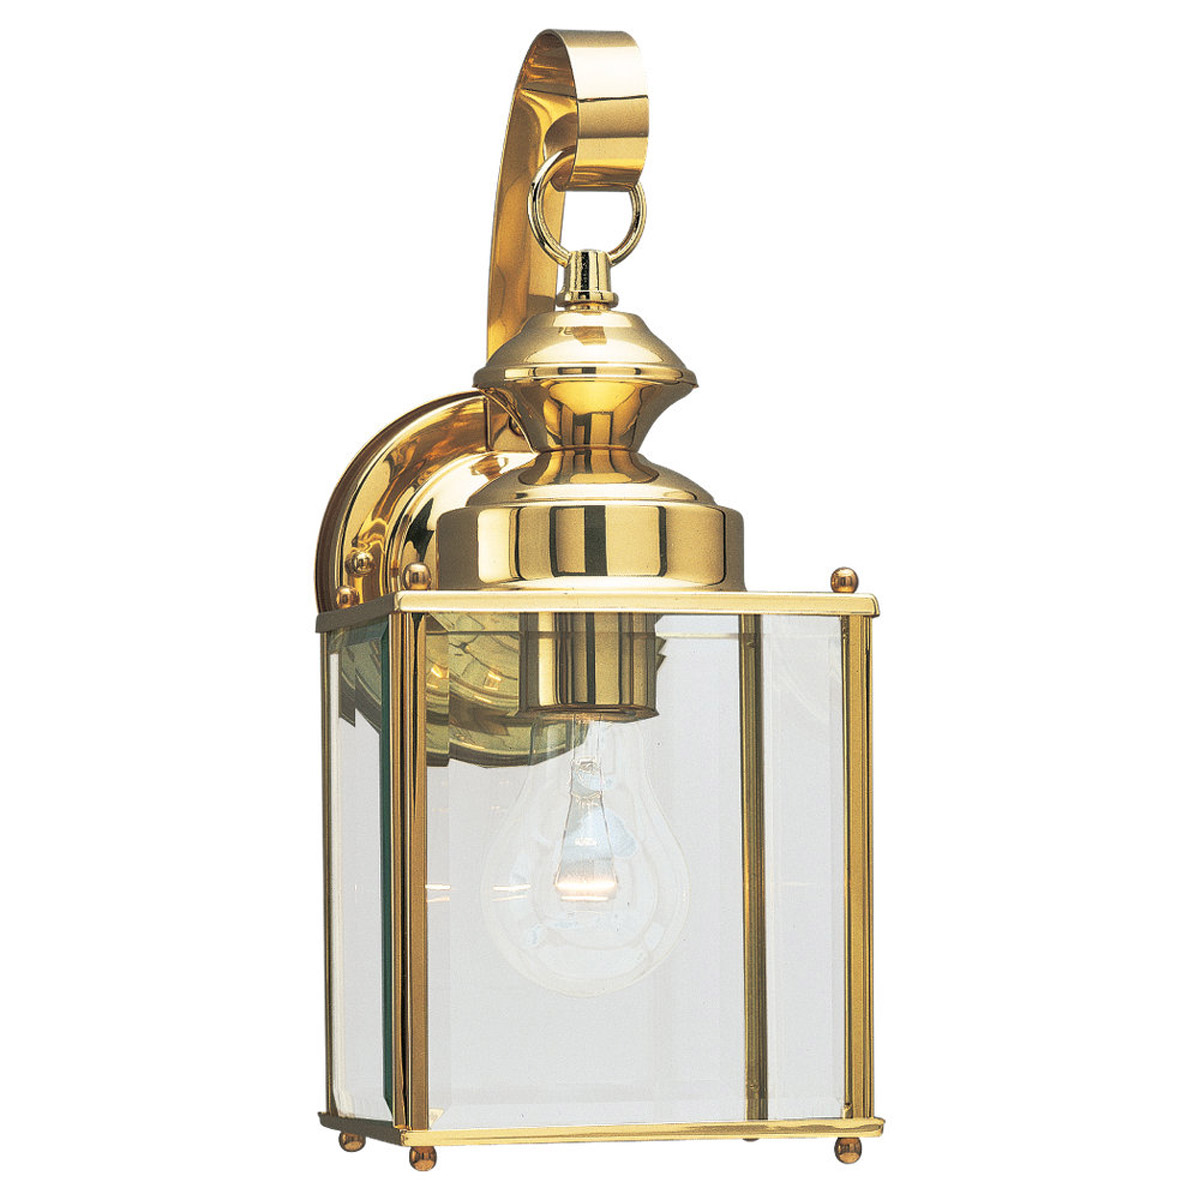 Sea Gull Lighting Jamestowne 1 Light Outdoor Wall Lantern in Polished Brass 8457-02 photo